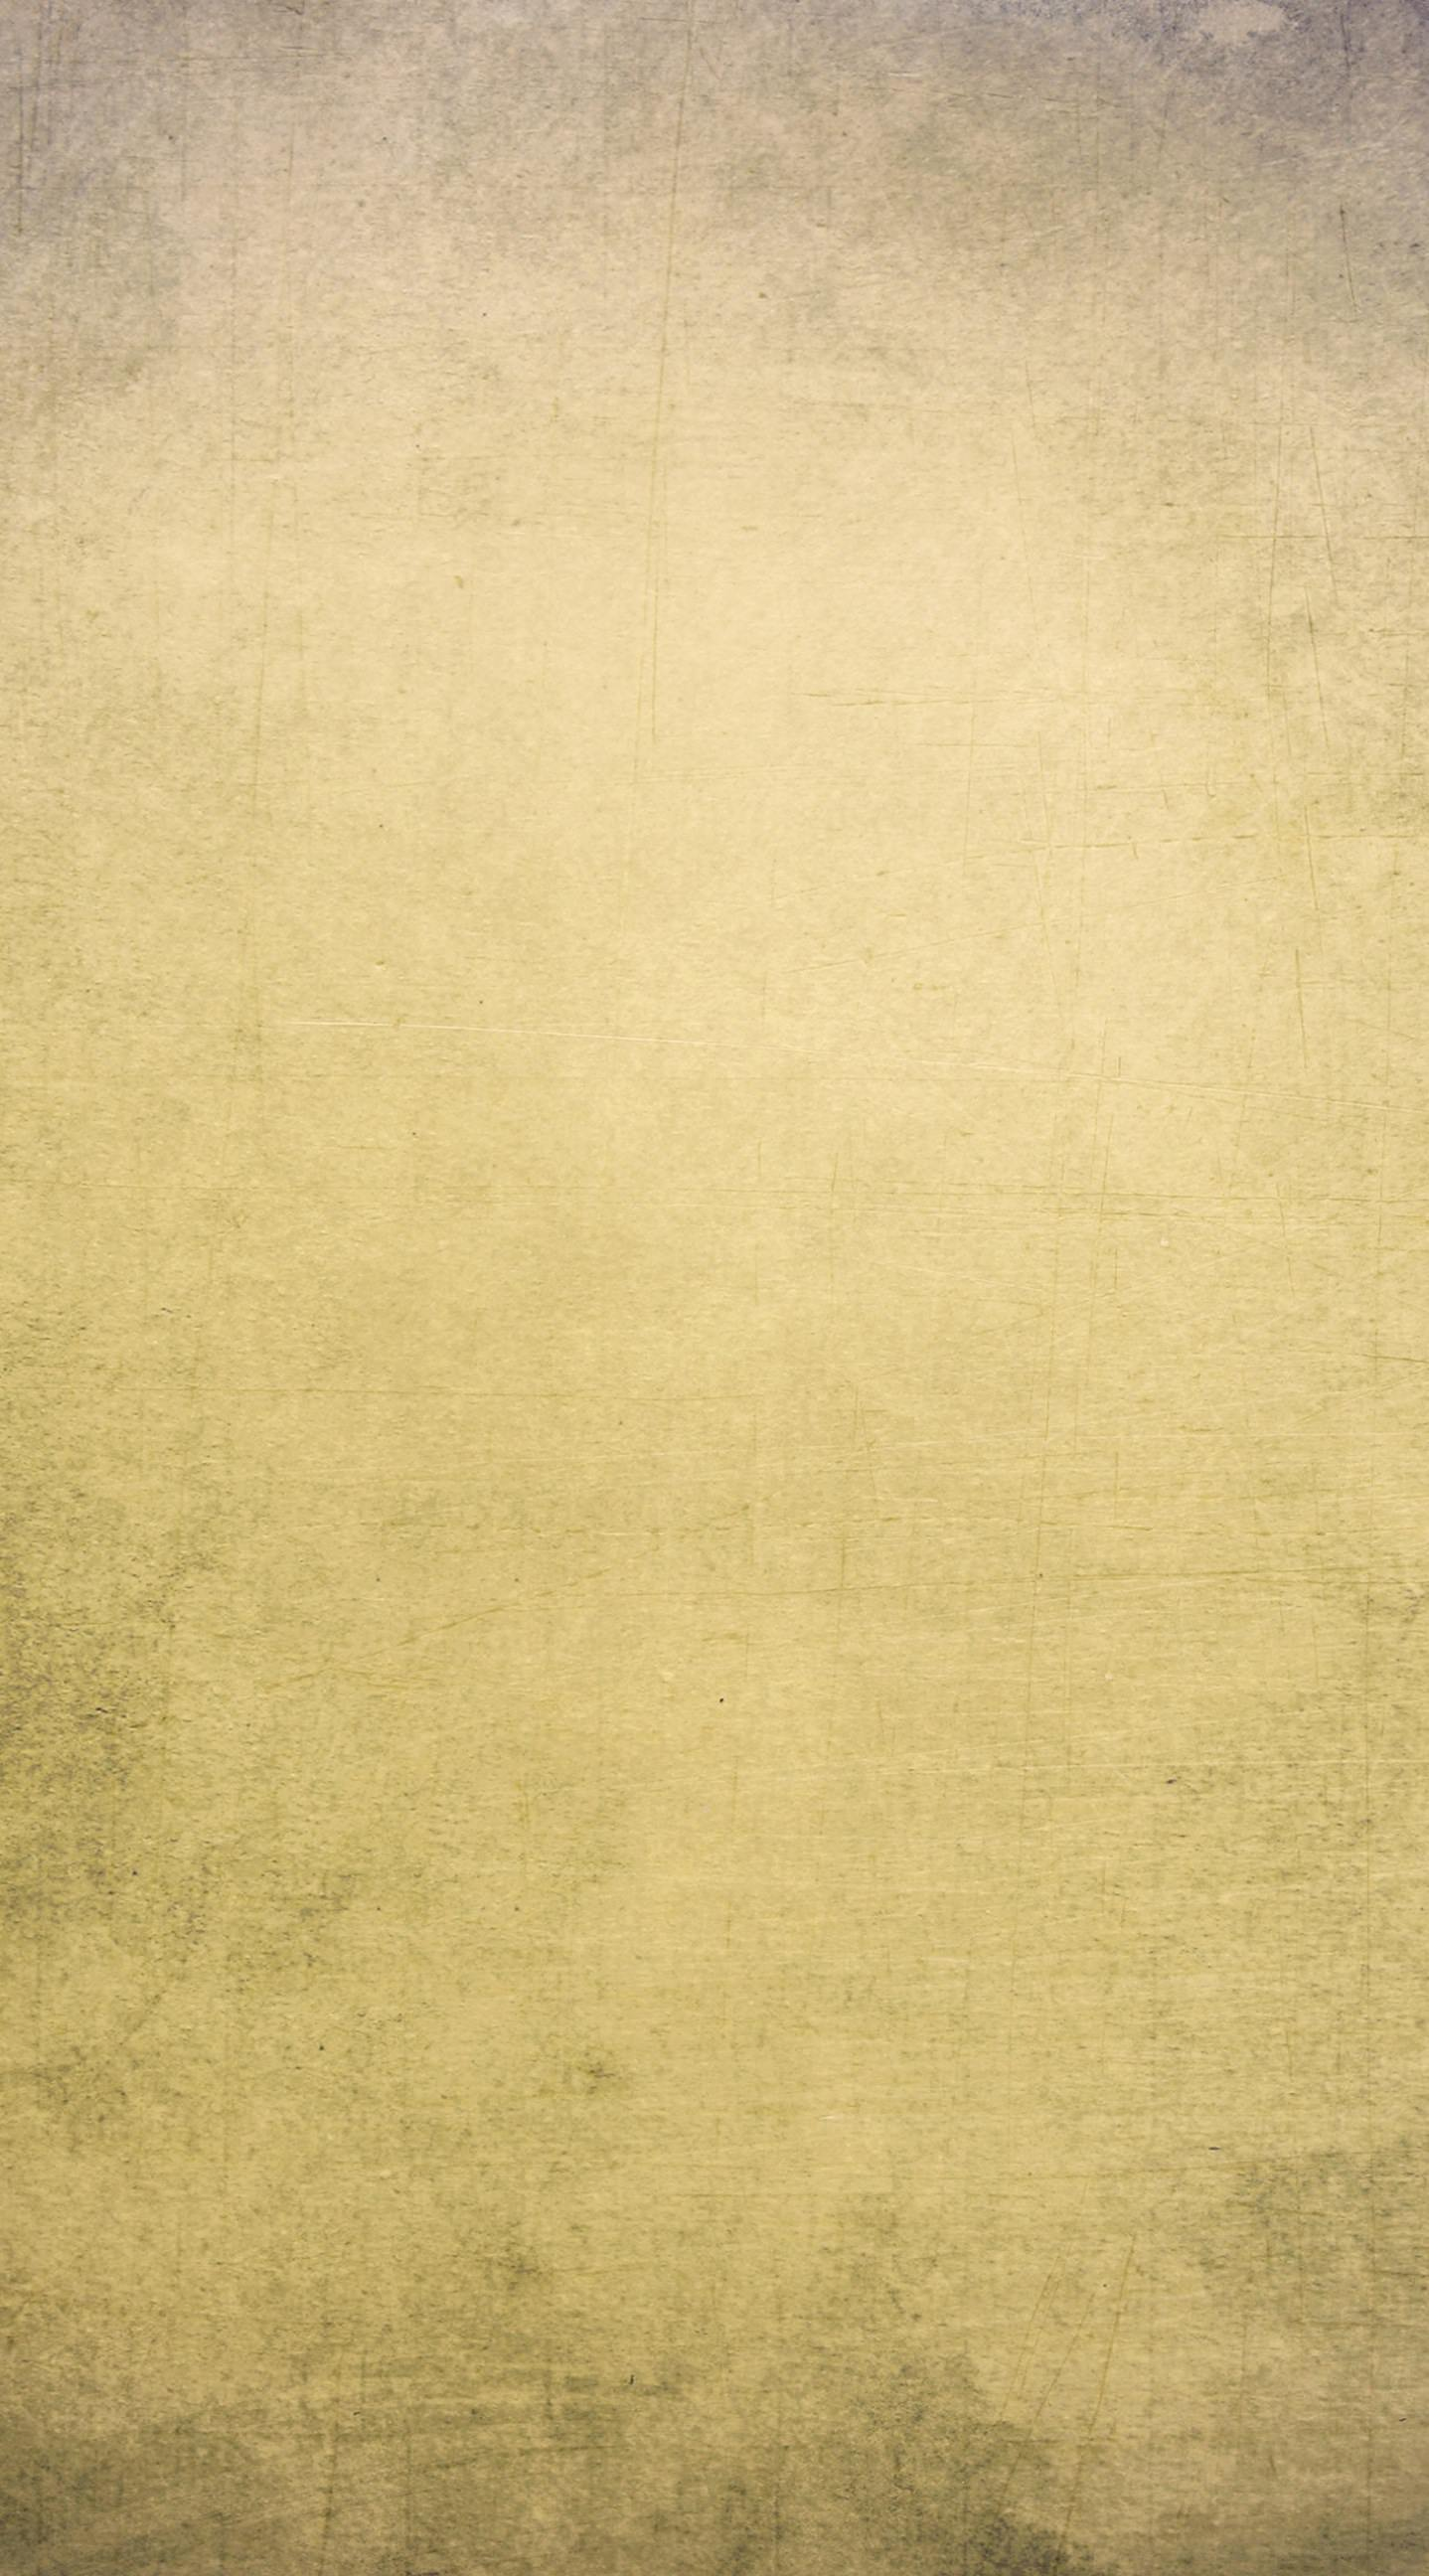 Pattern Gold Dust Green Wallpaper Sc Iphone6splus